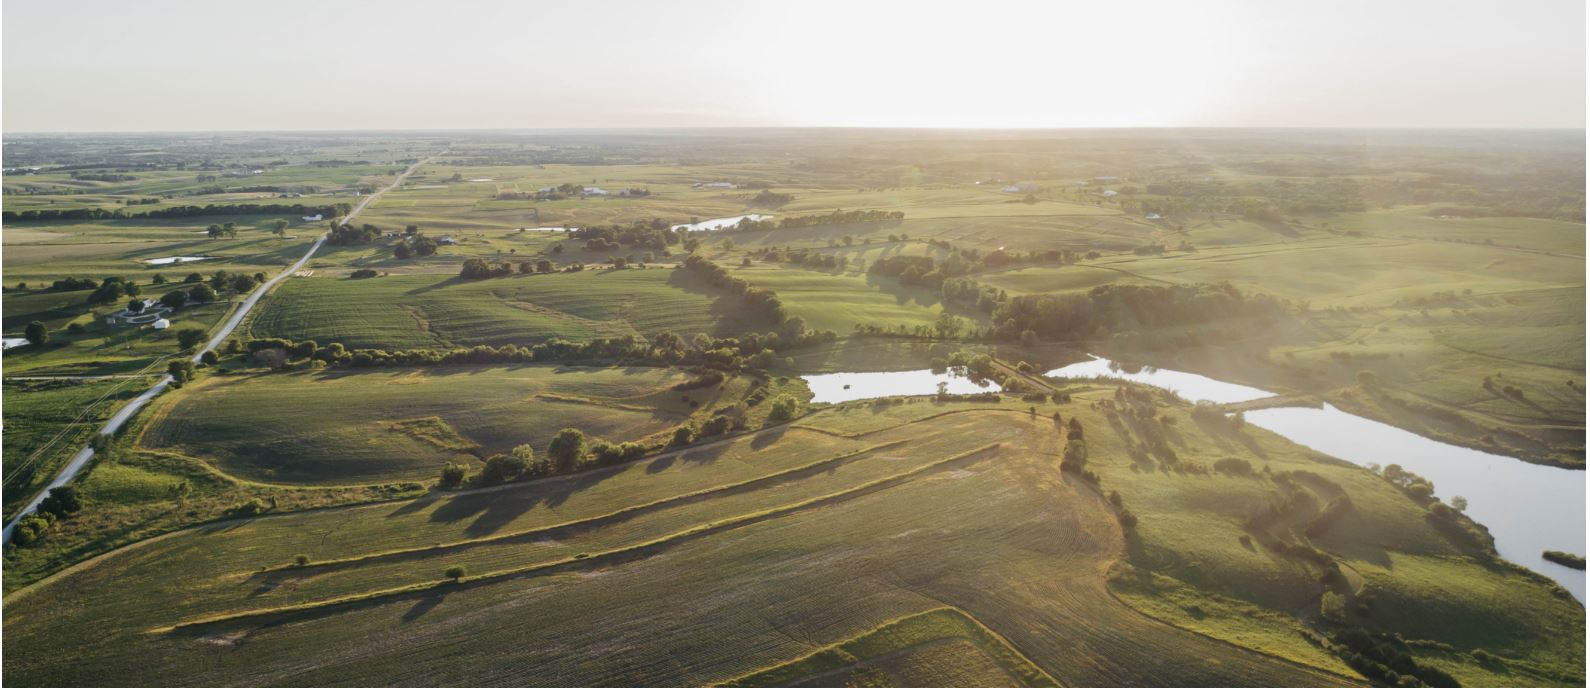 3 REASONS NOW IS A GREAT TIME TO SELL LAND